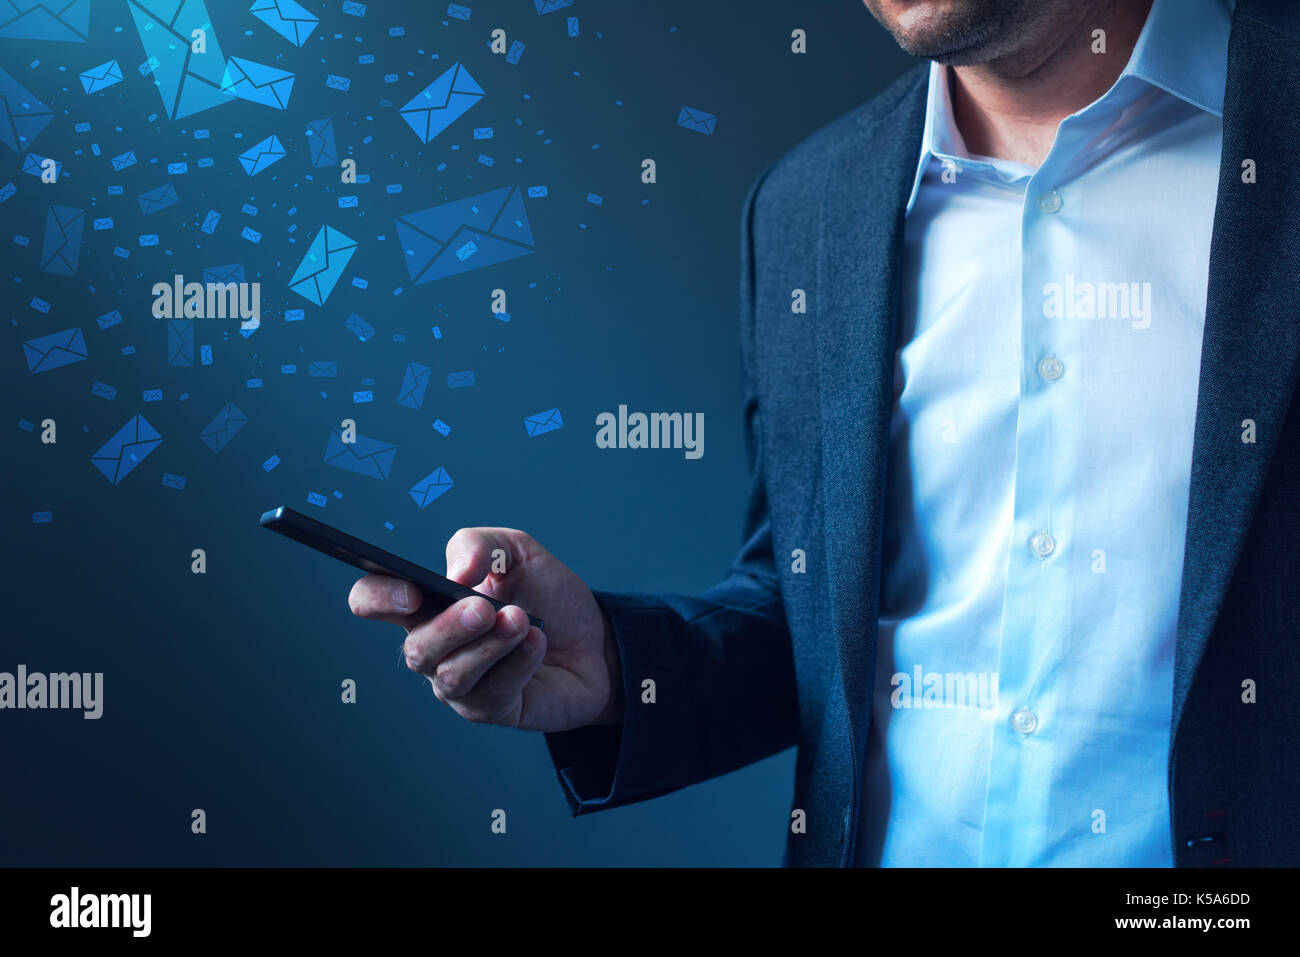 Businessman sending bulk messages using smartphone, male business person in elegant suit delivering e-mails, newsletters or SMS text messages with his - Stock Image